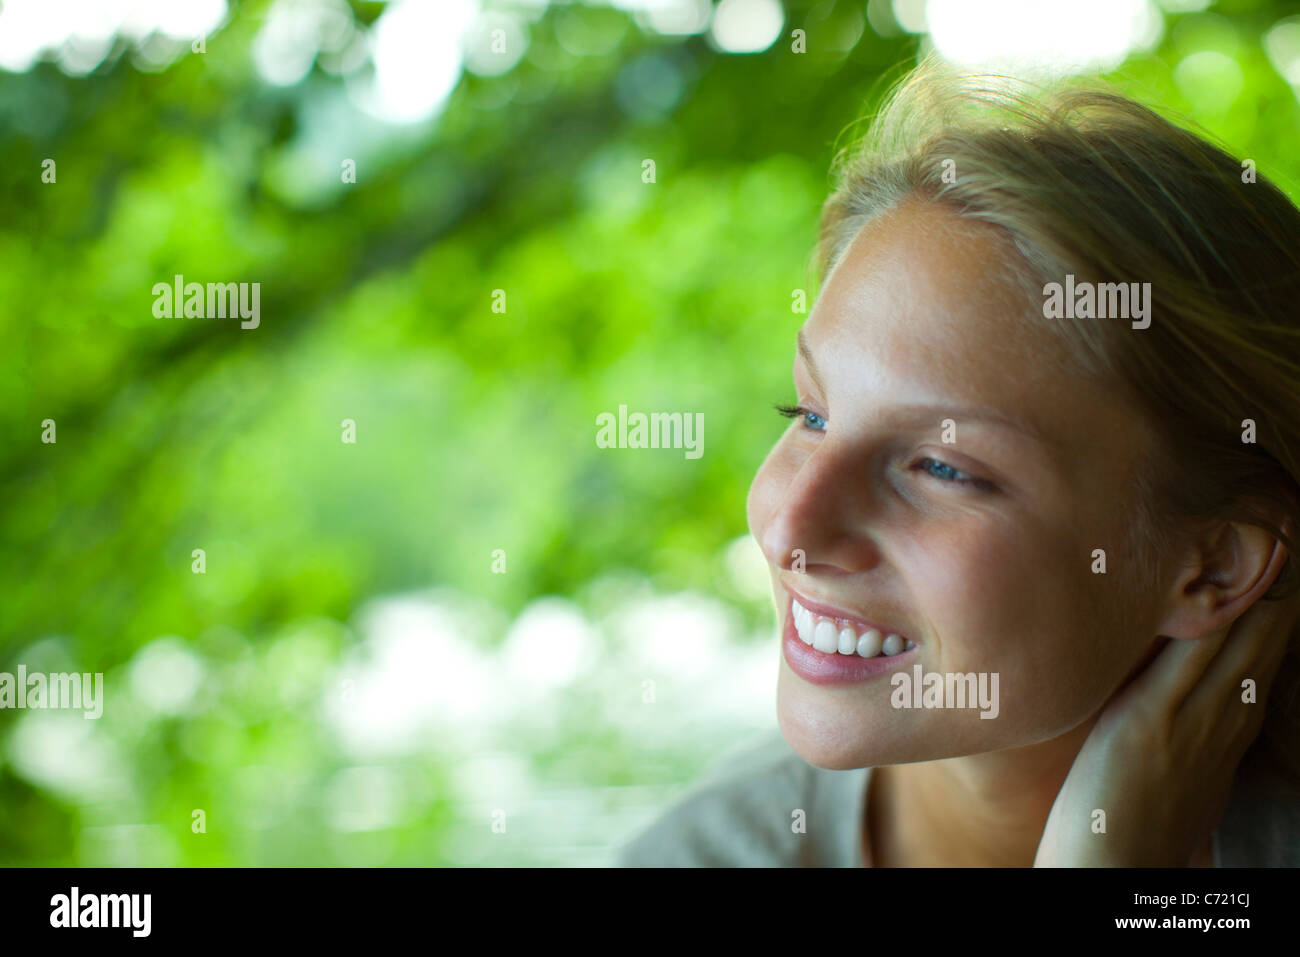 Young woman in nature, portrait - Stock Image